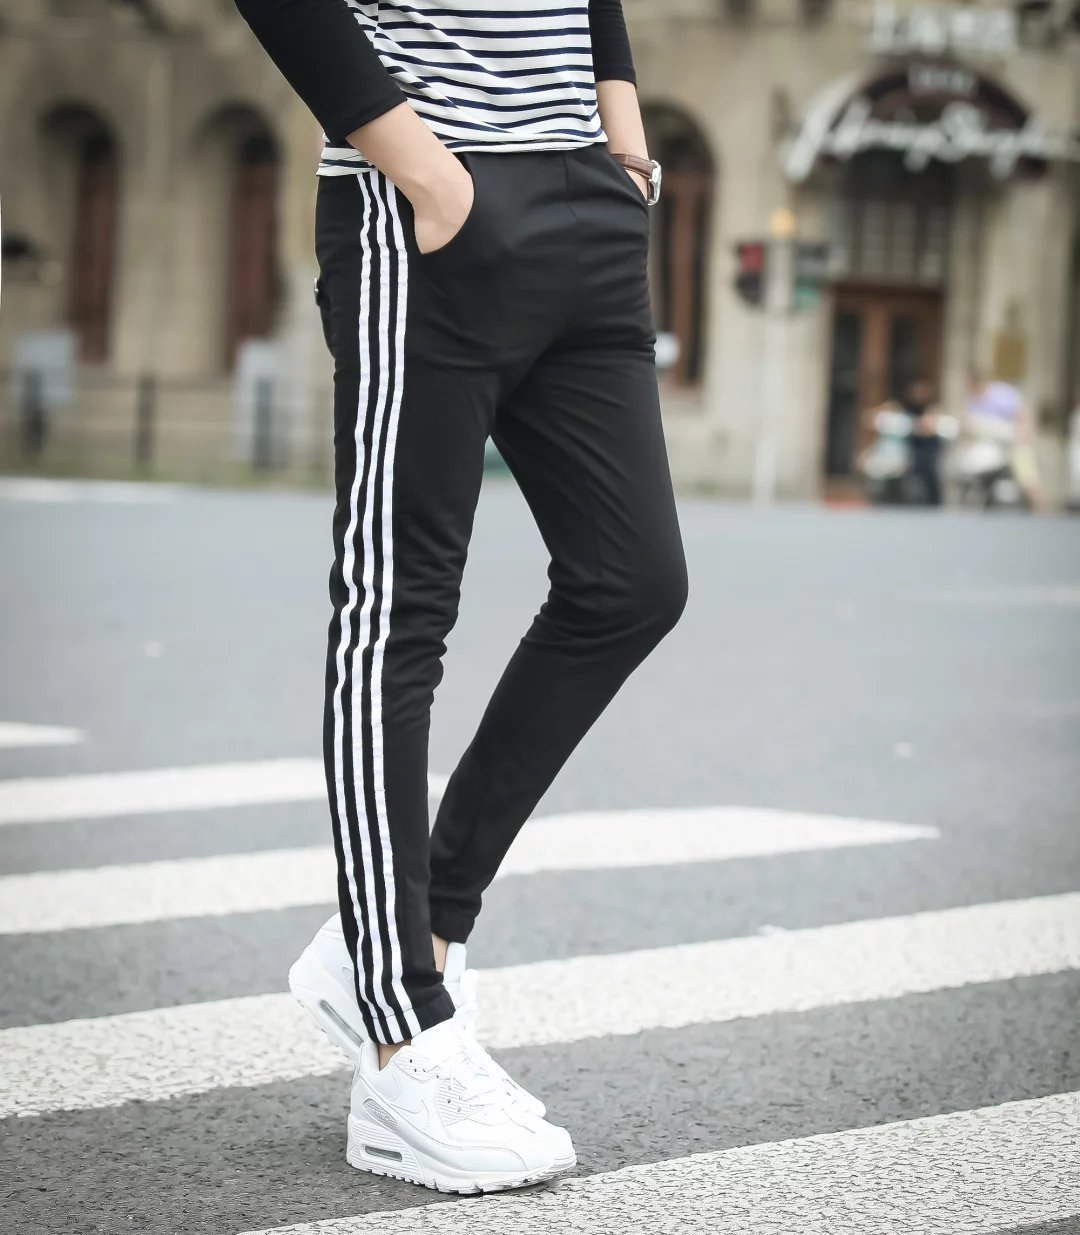 2016 New Style Harem Pants Men's Large Size Casual Pants Youth Men Loose-Fit Skinny Sports Sweatpants Trousers Fashion